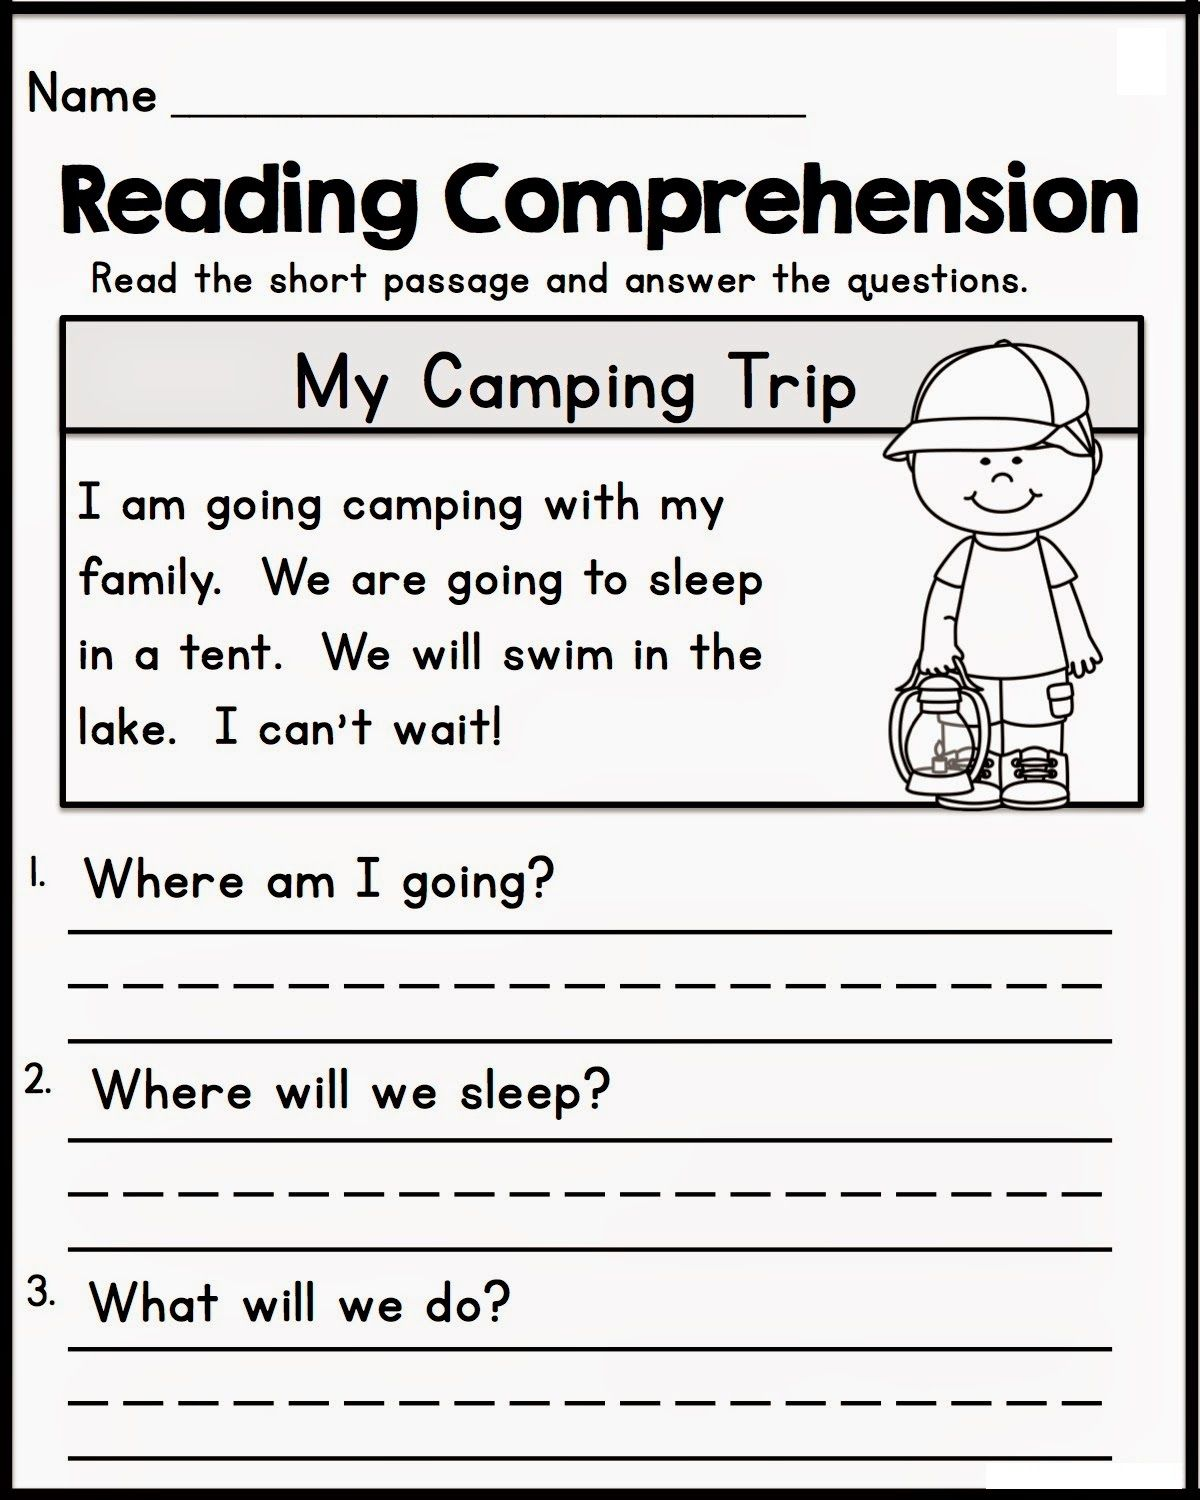 - Free Reading Comprehension Online Worksheets For Kids Learning